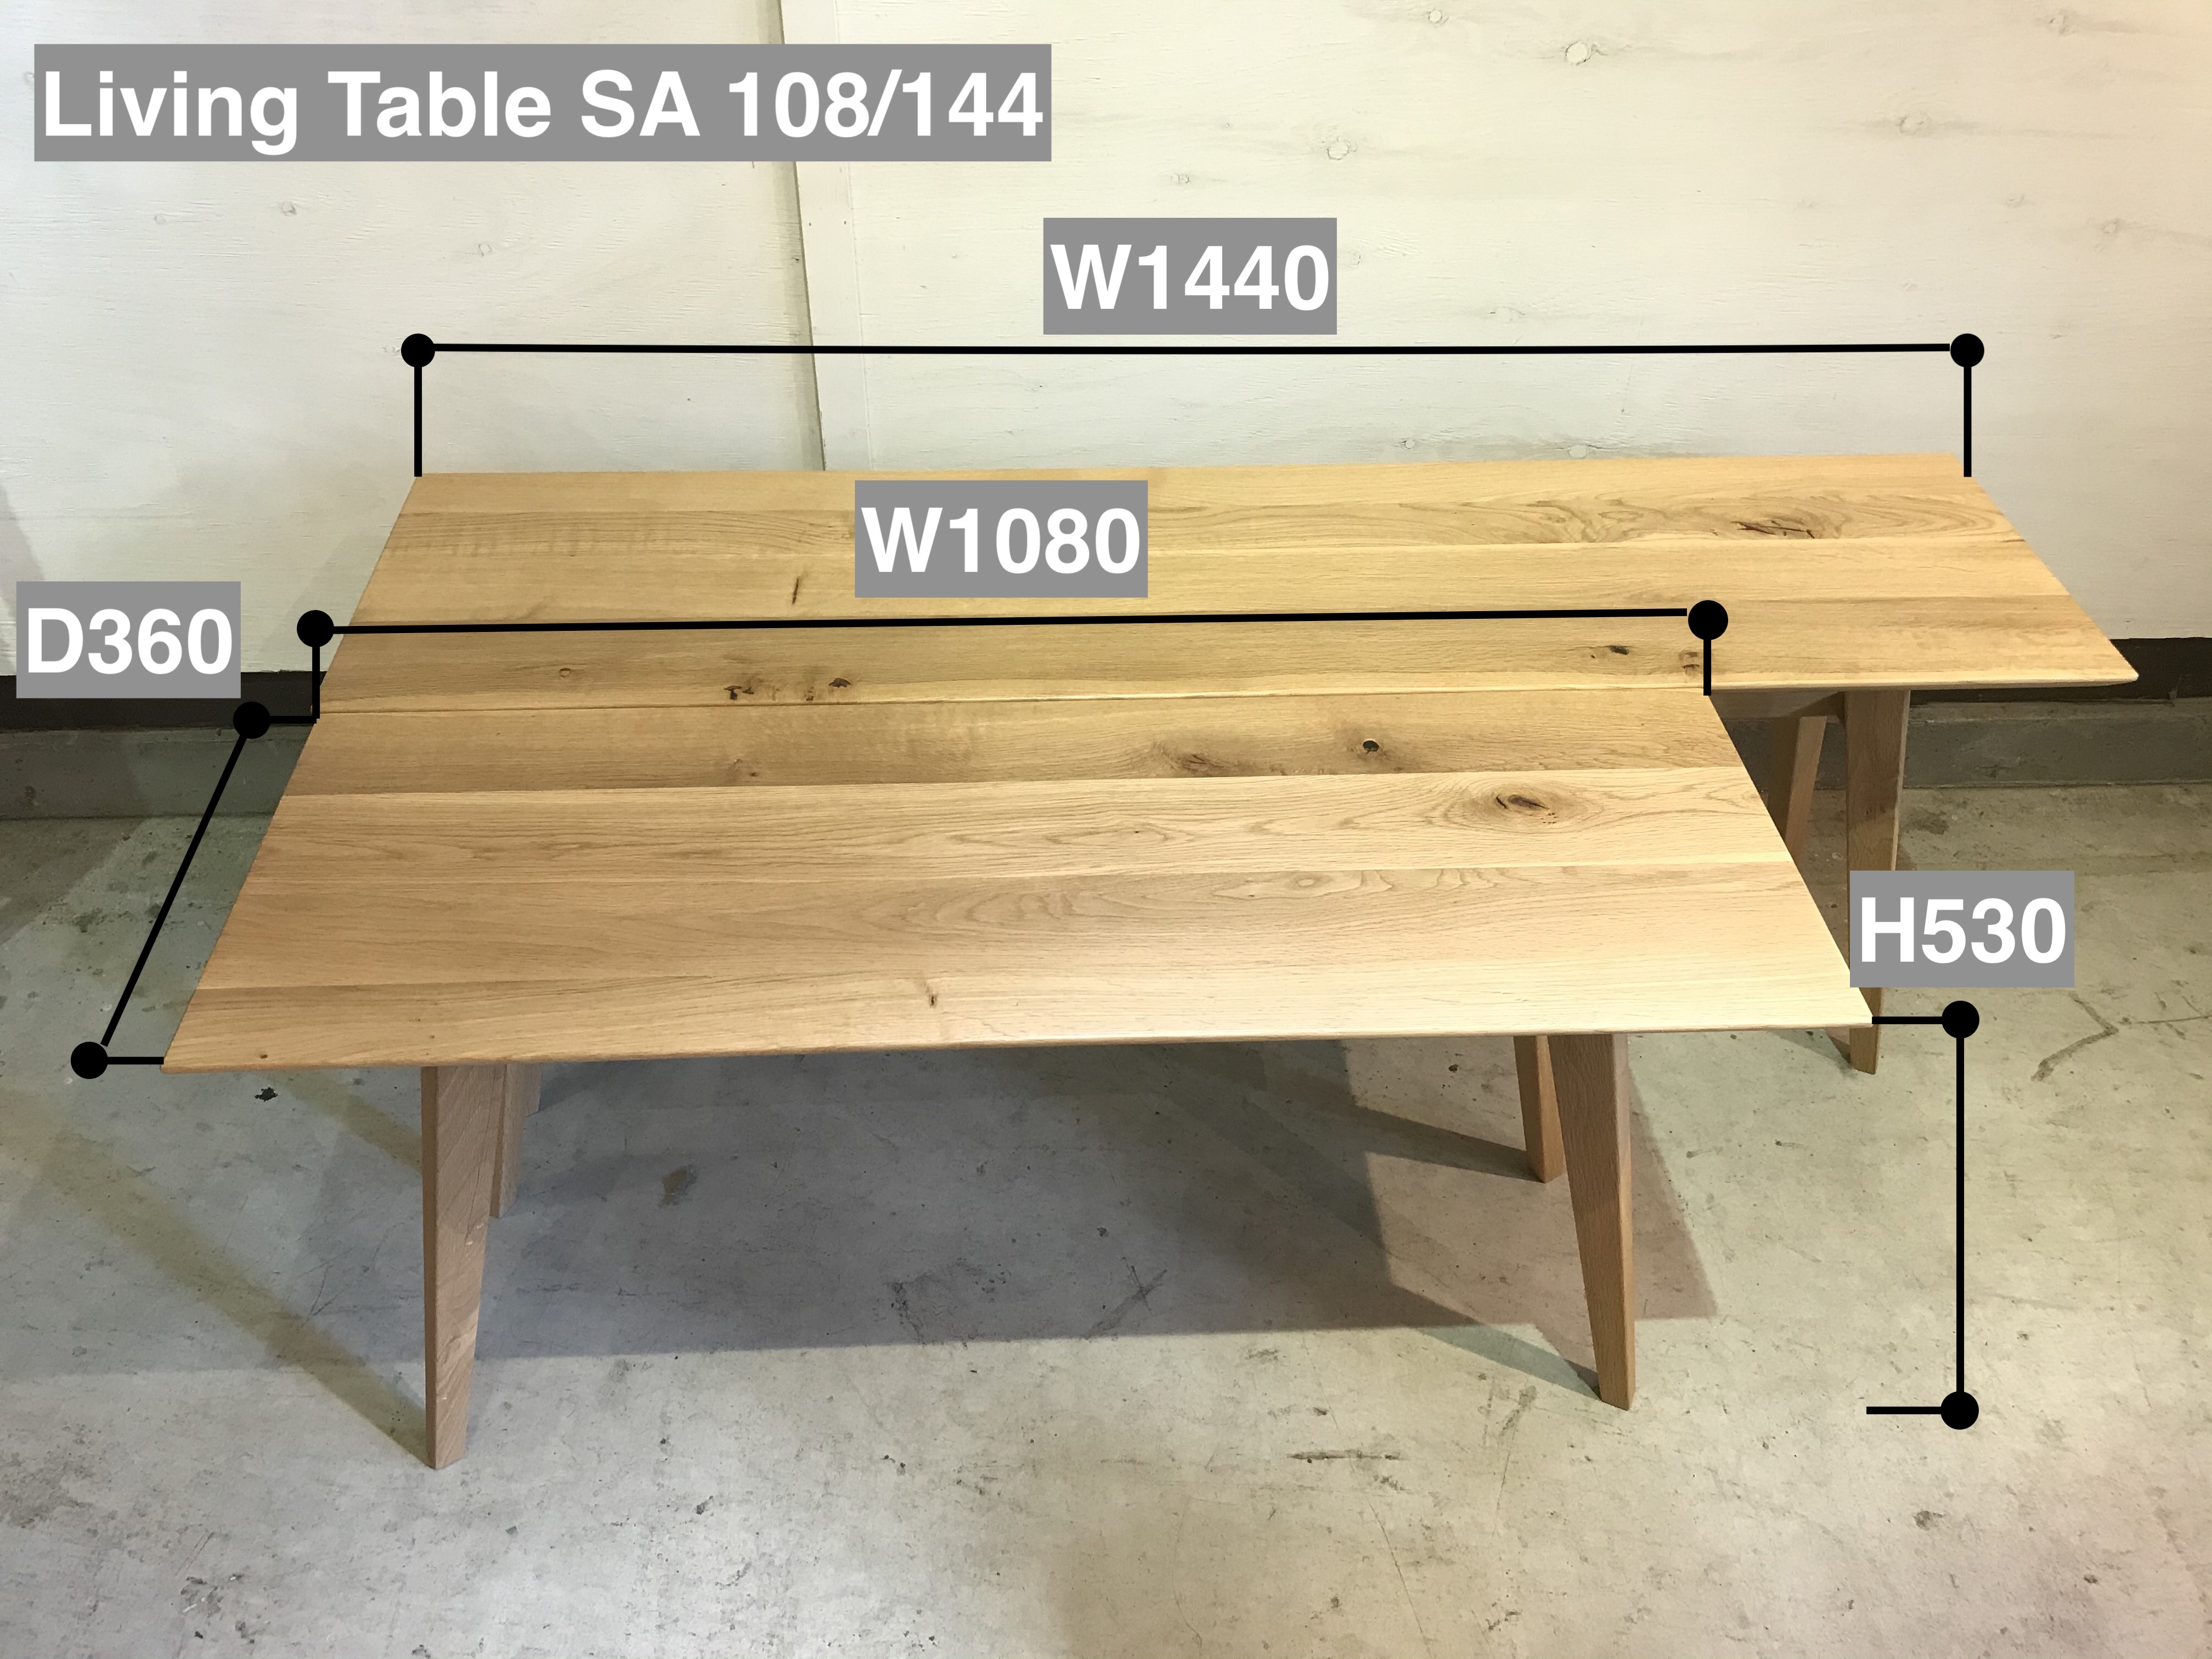 Living Table SA サイズ比較